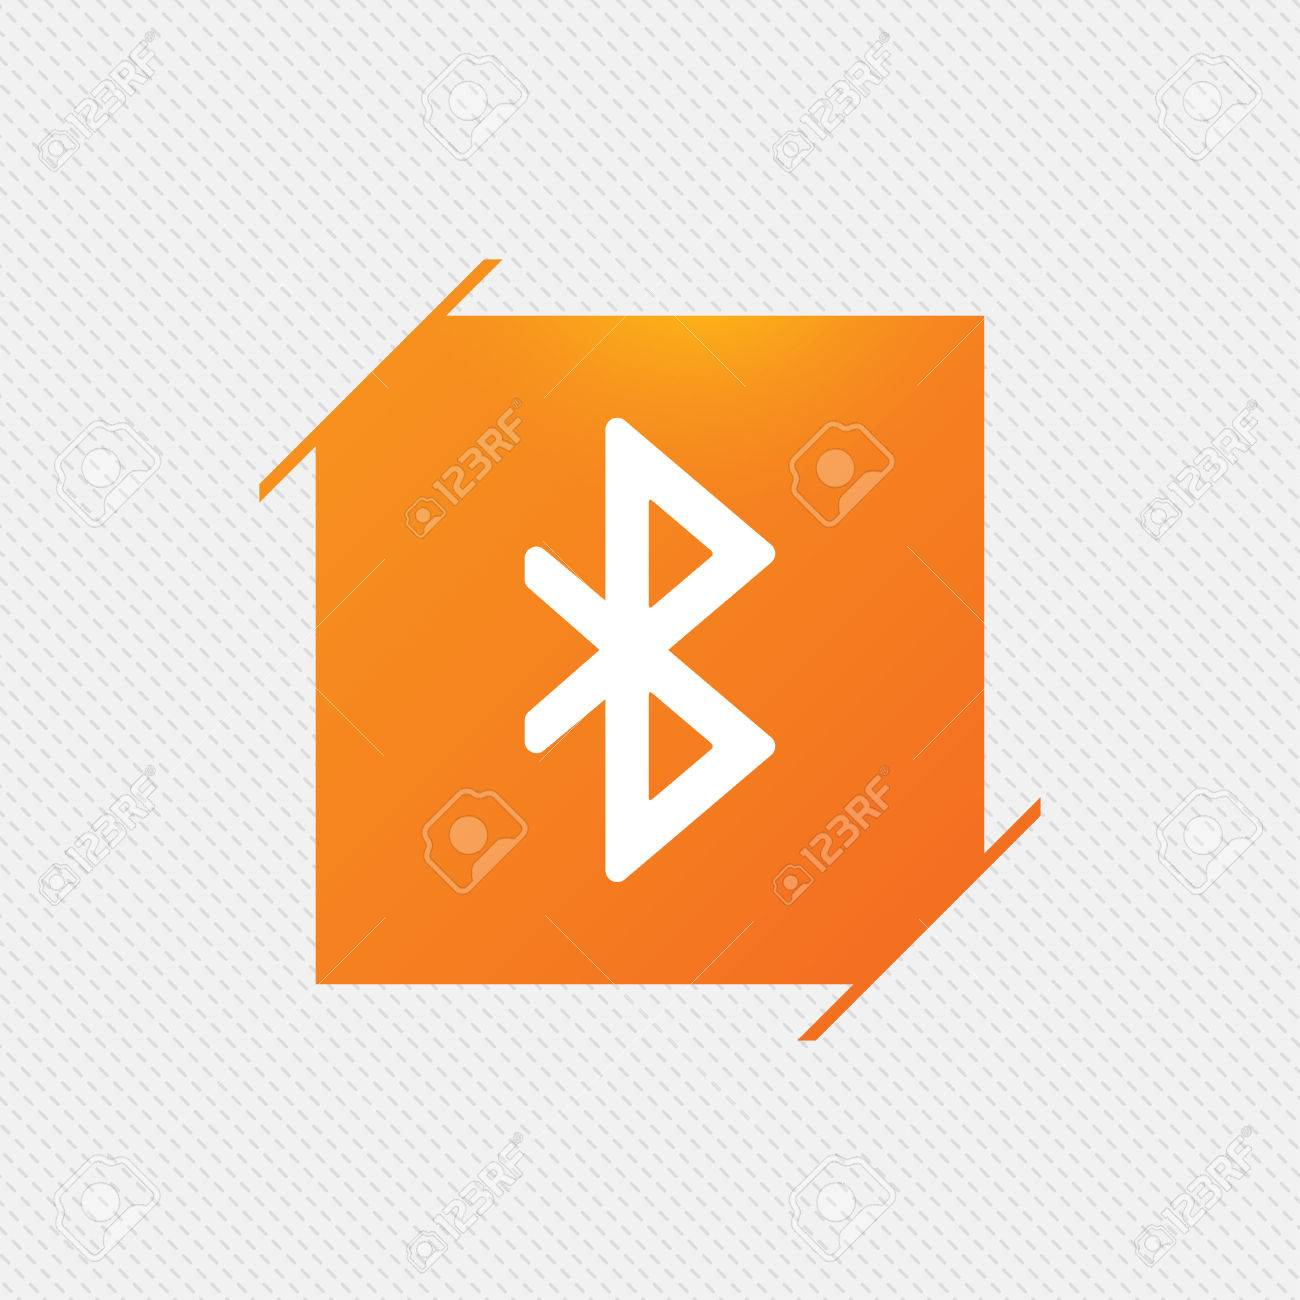 Bluetooth symbol images stock pictures royalty free bluetooth mobile network symbol data transfer orange square label on pattern biocorpaavc